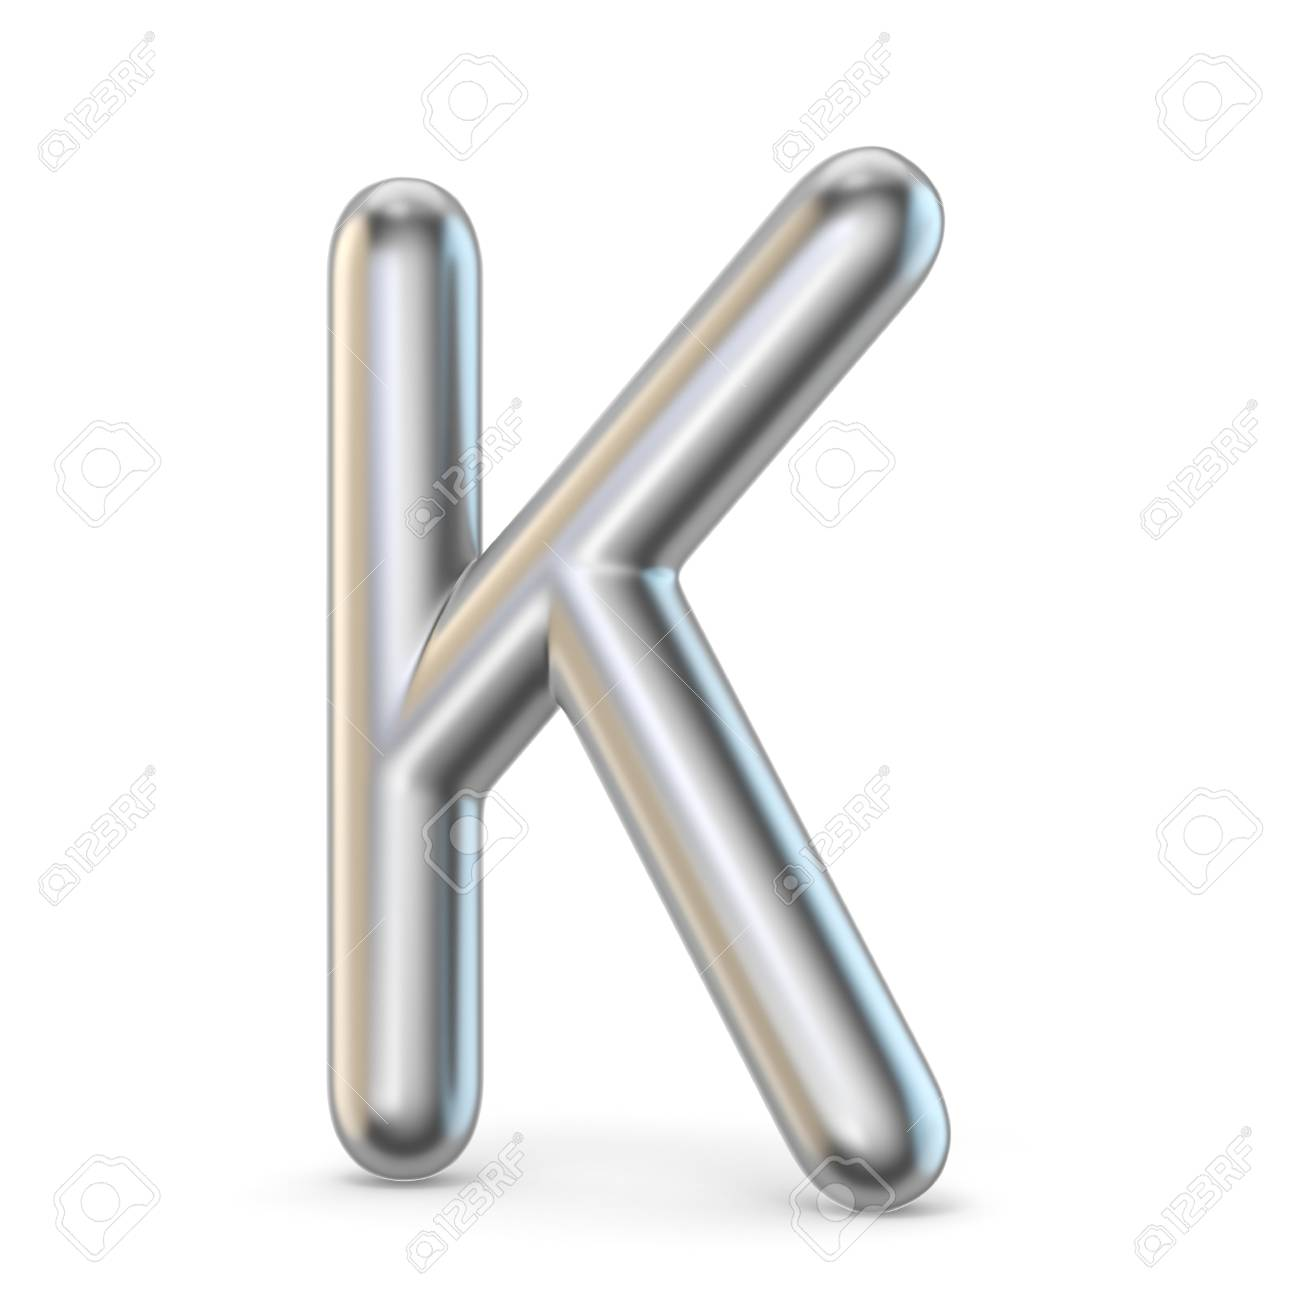 Metal Alphabet Symbol Letter K 3D Render Illustration Isolated